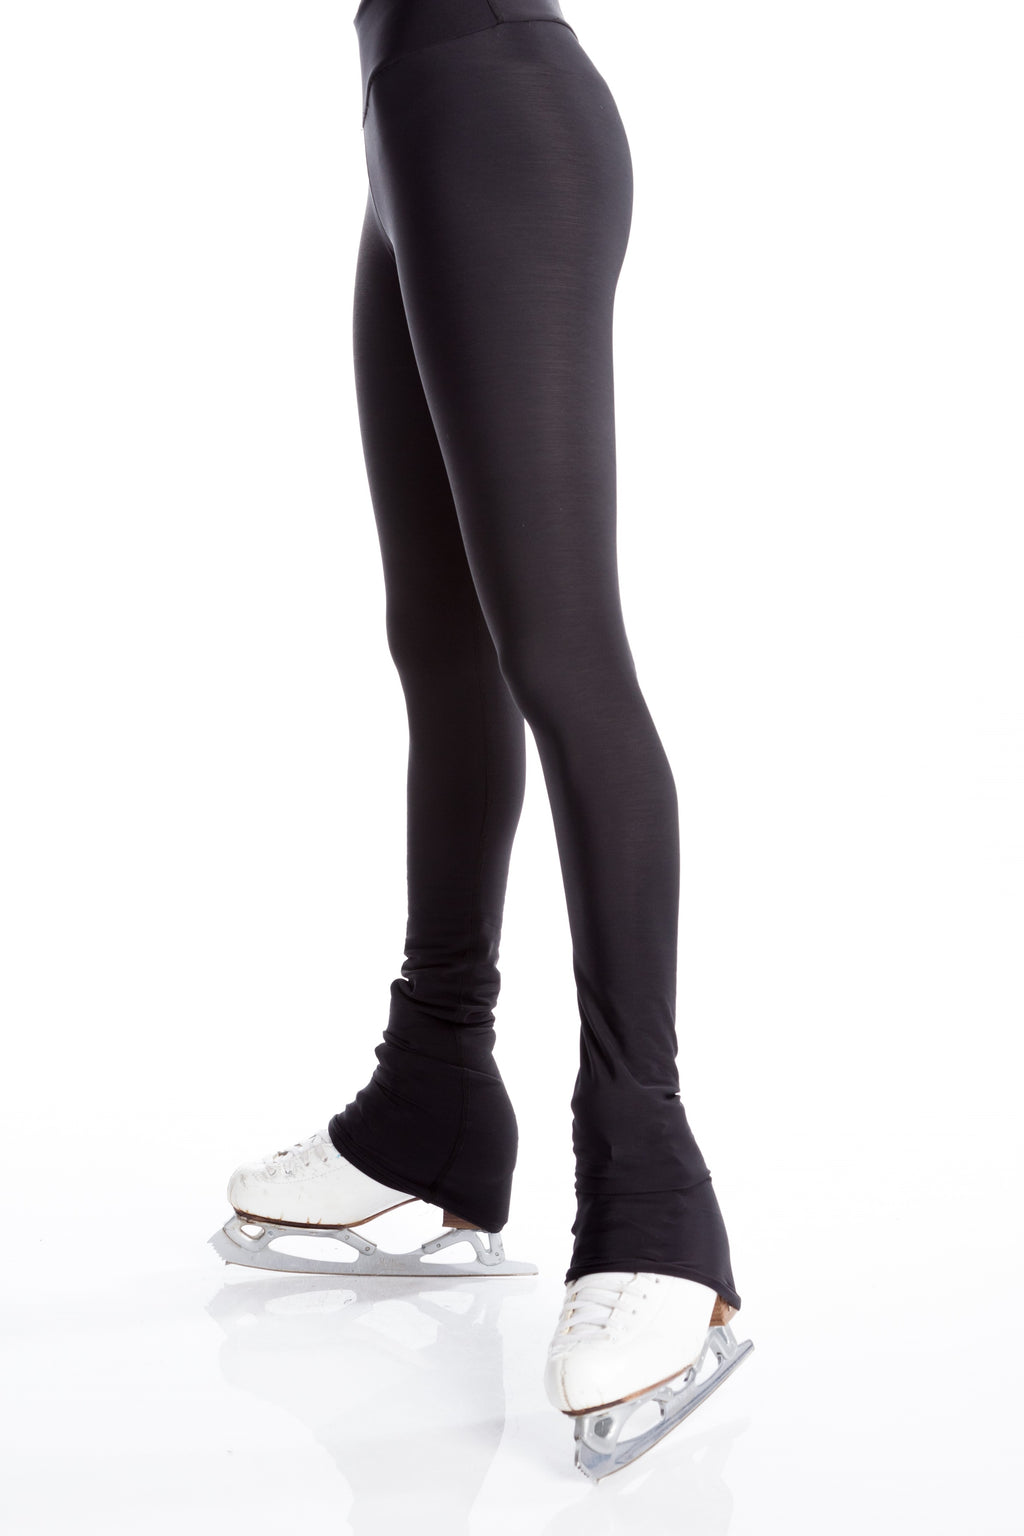 Black High Waist Supplex Legging - Elite Xpression